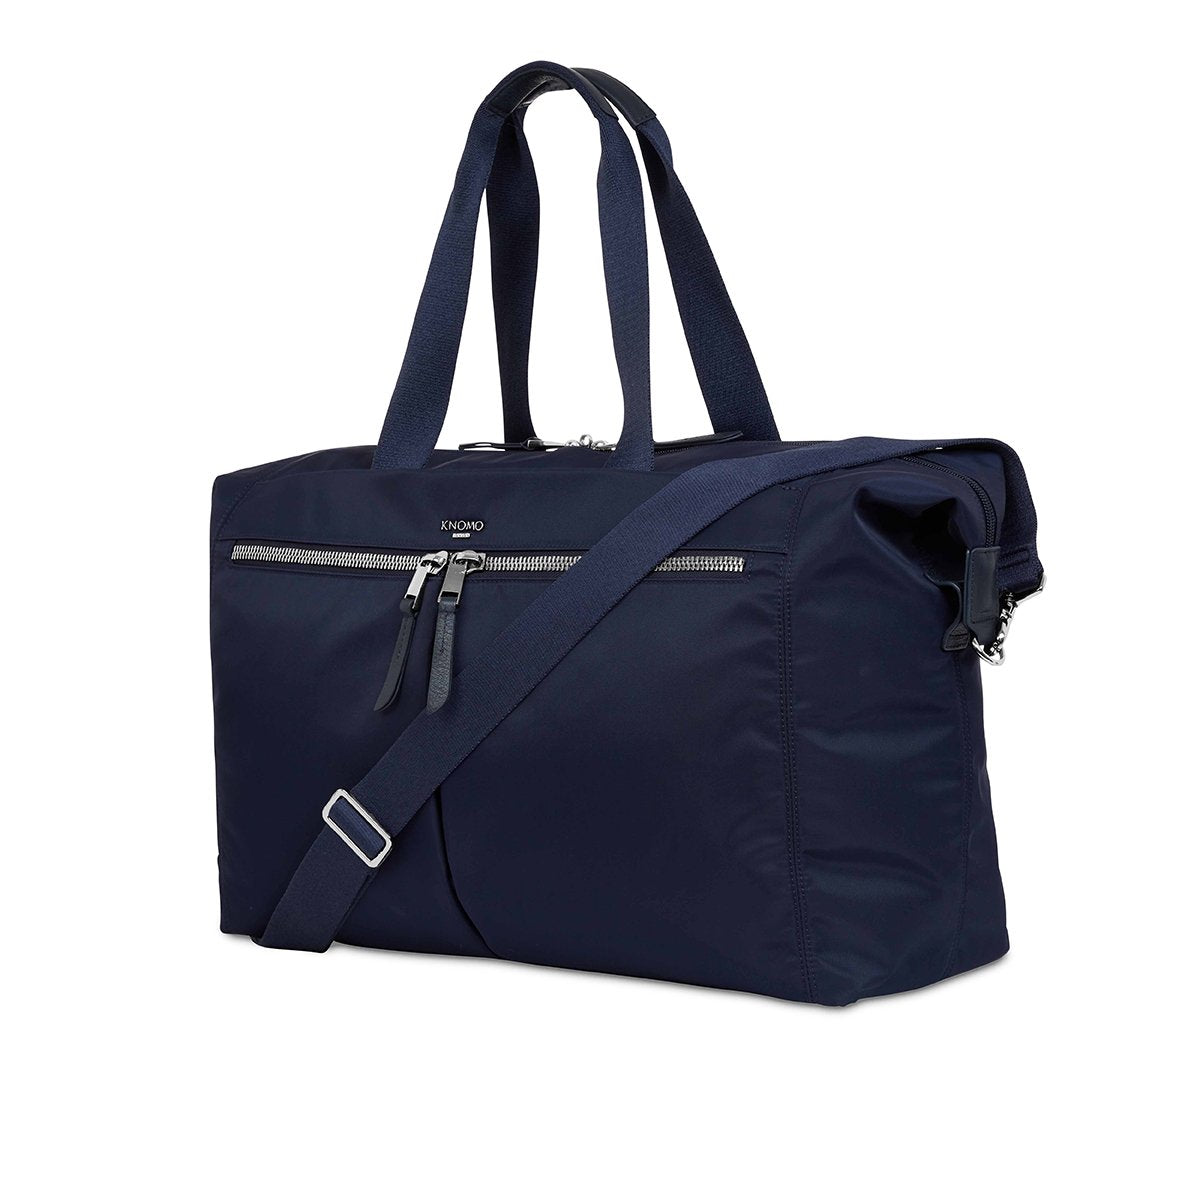 "KNOMO Stratton Duffle/Tote Three Quarter View With Strap 15"" -  Dark Navy 